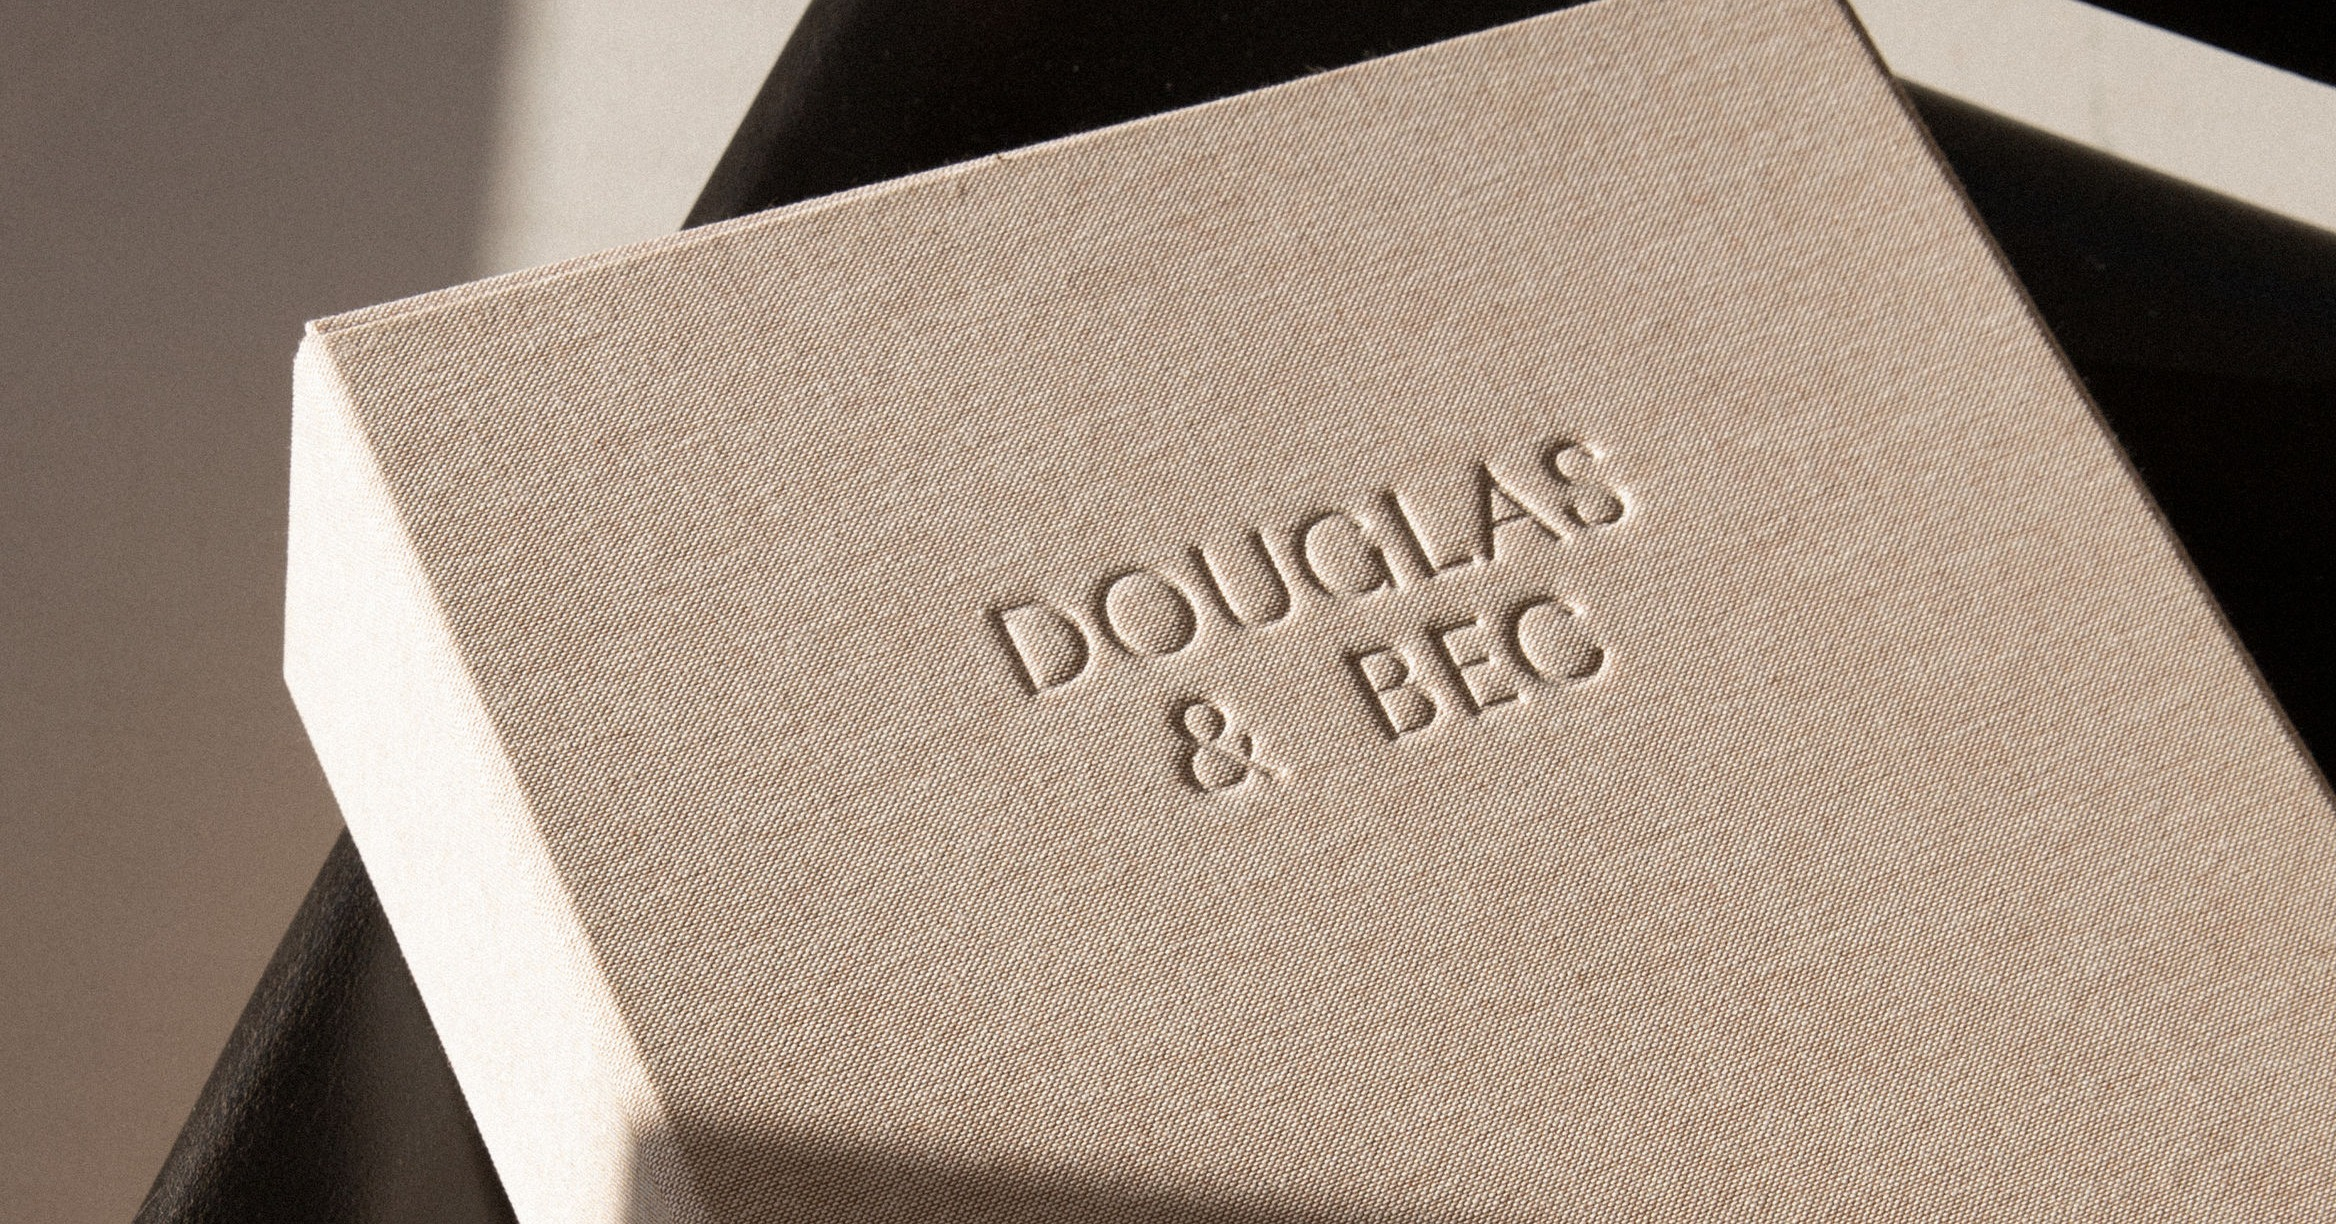 Embossing vs. Debossing: Which Has More Impact For Your Packaging?